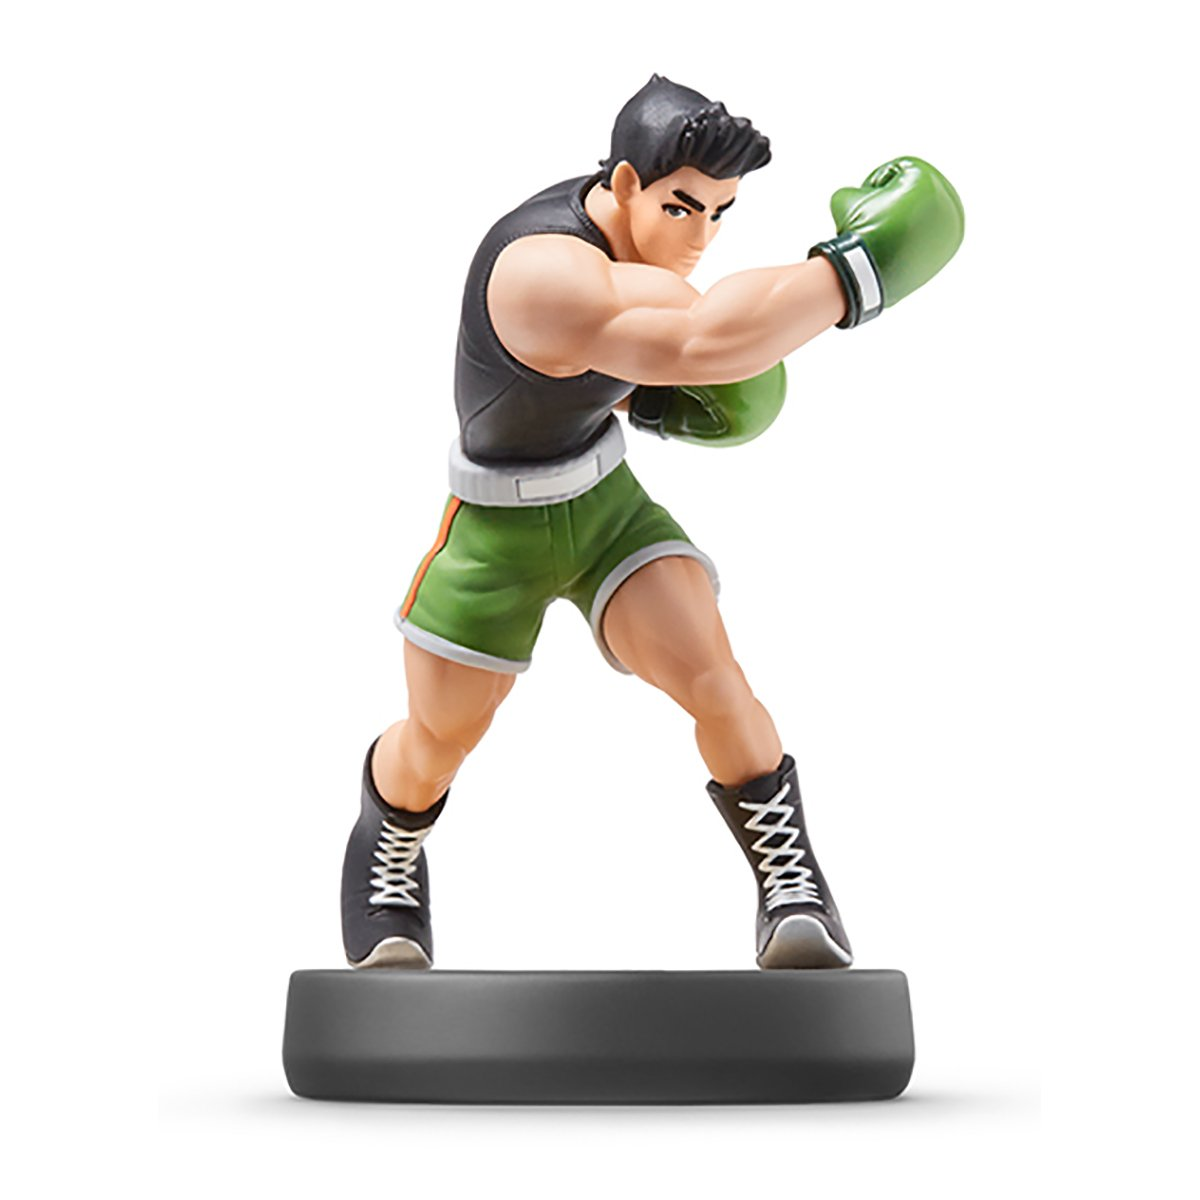 Nintendo Little Mac Amiibo - Japan Import - Super Smash Bros Series - 3DS WiiU Switch by Nintendo